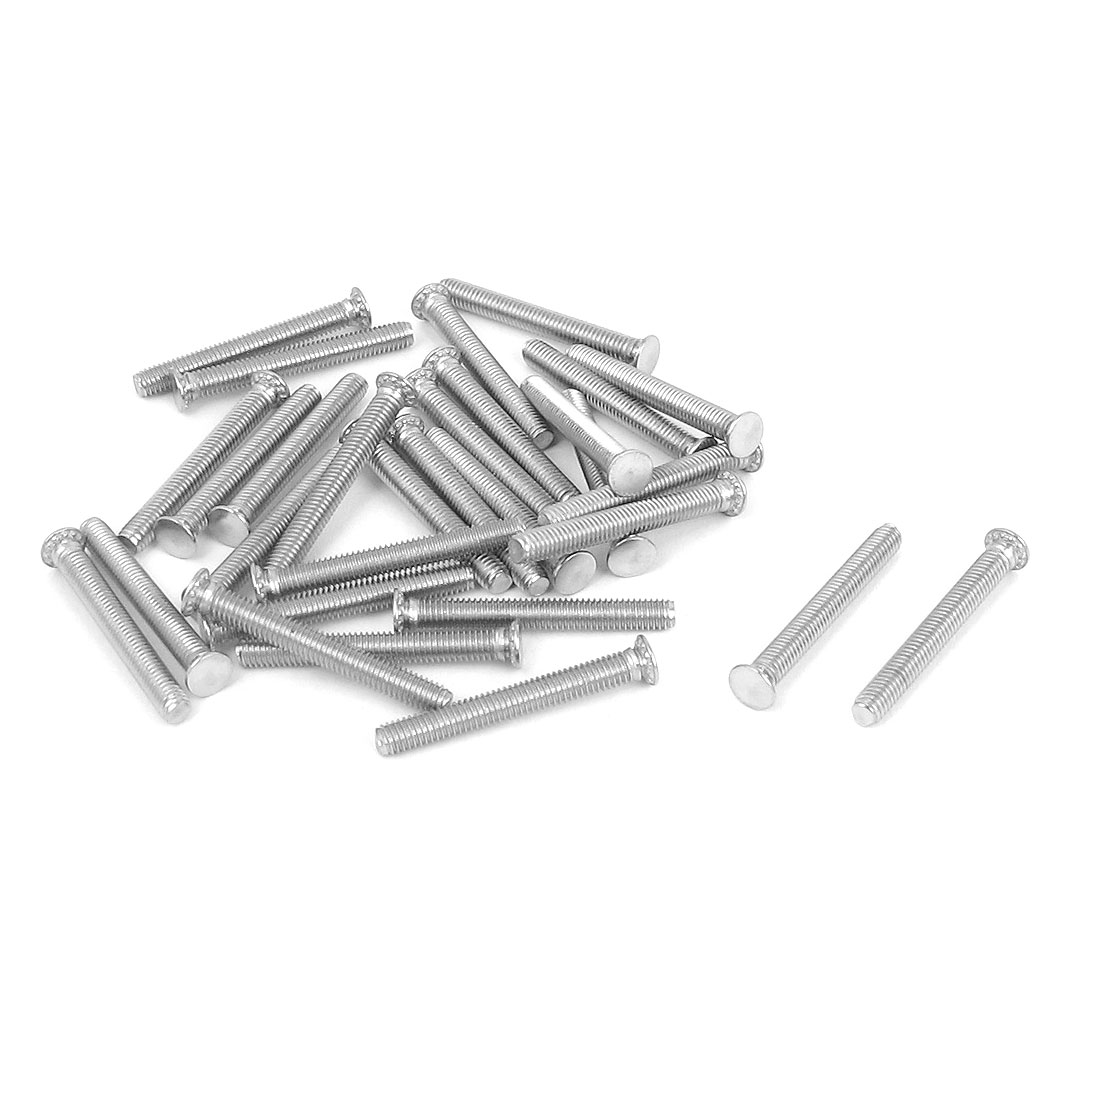 M3x25mm Flush Head Stainless Steel Self Clinching Threaded Studs Fastener 25pcs